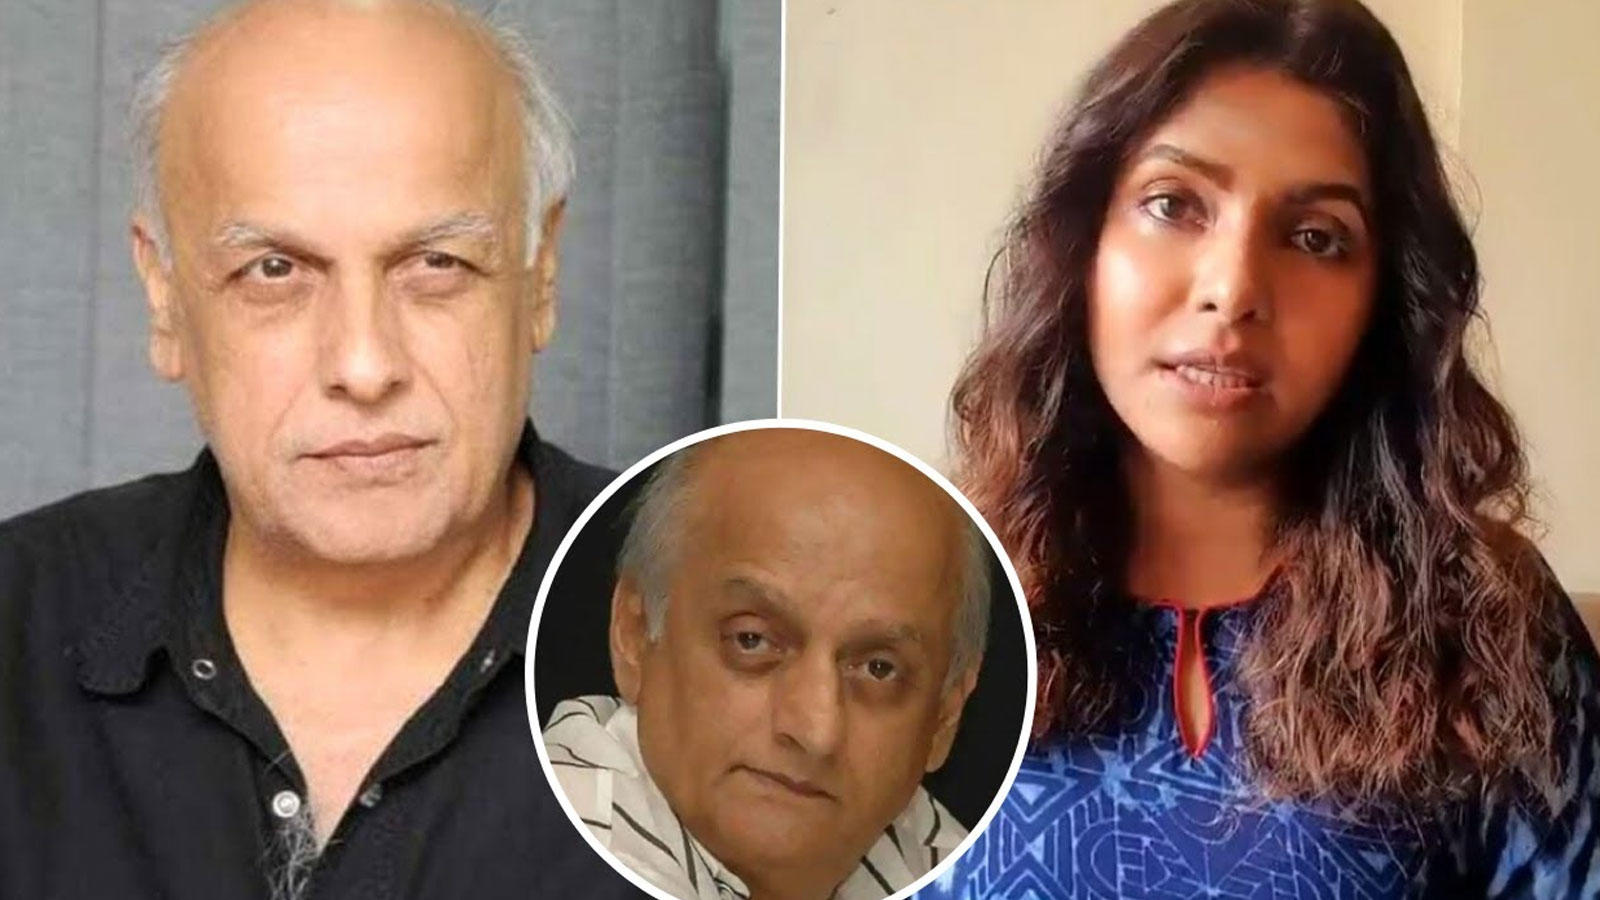 harassment-allegations-mukesh-bhatt-files-defamation-complaint-against-actress-luviena-lodh